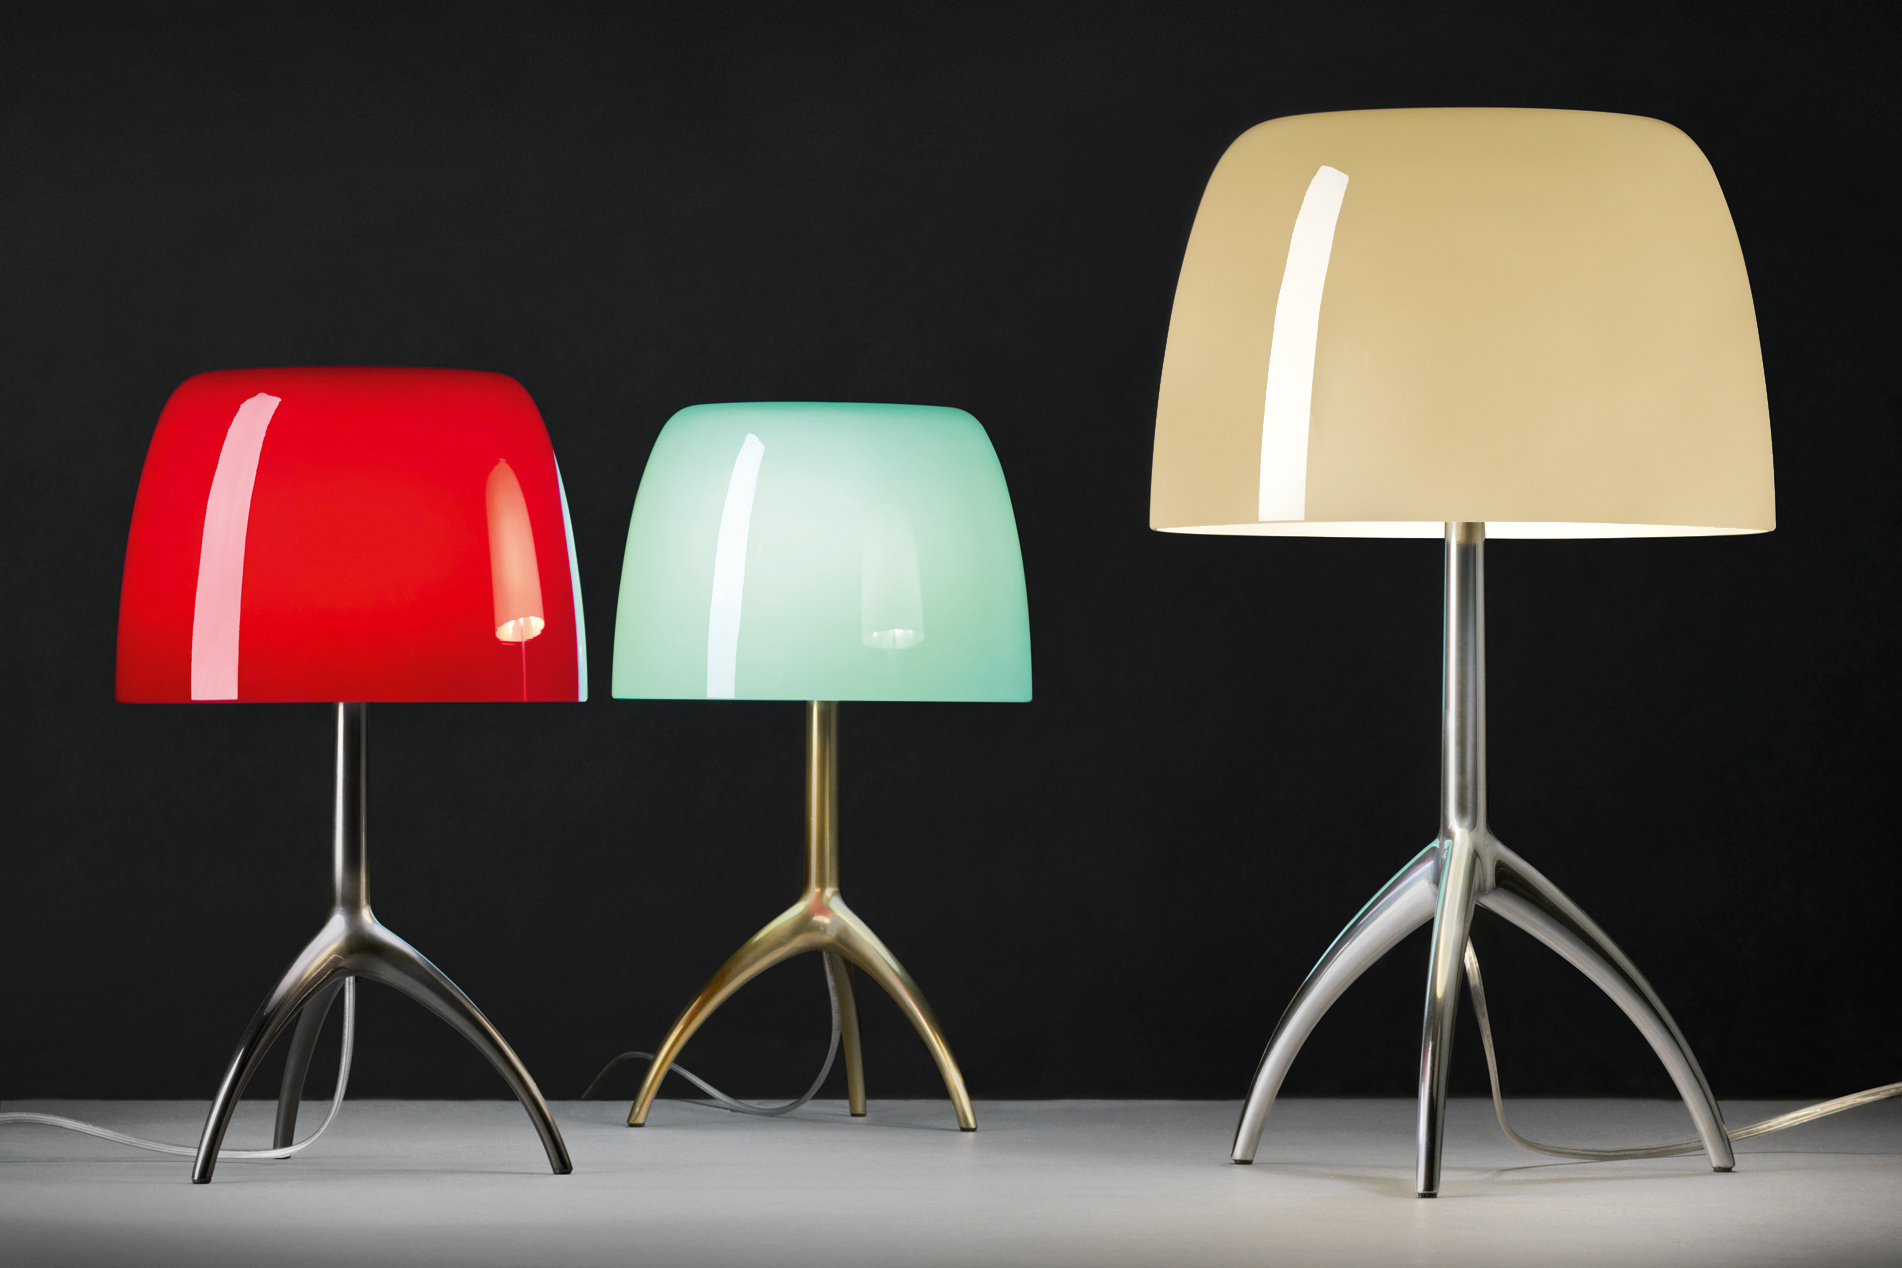 Table Lamp Tripod Foscarini Celebrates 25 Years Of The Lumiere Table Lamp